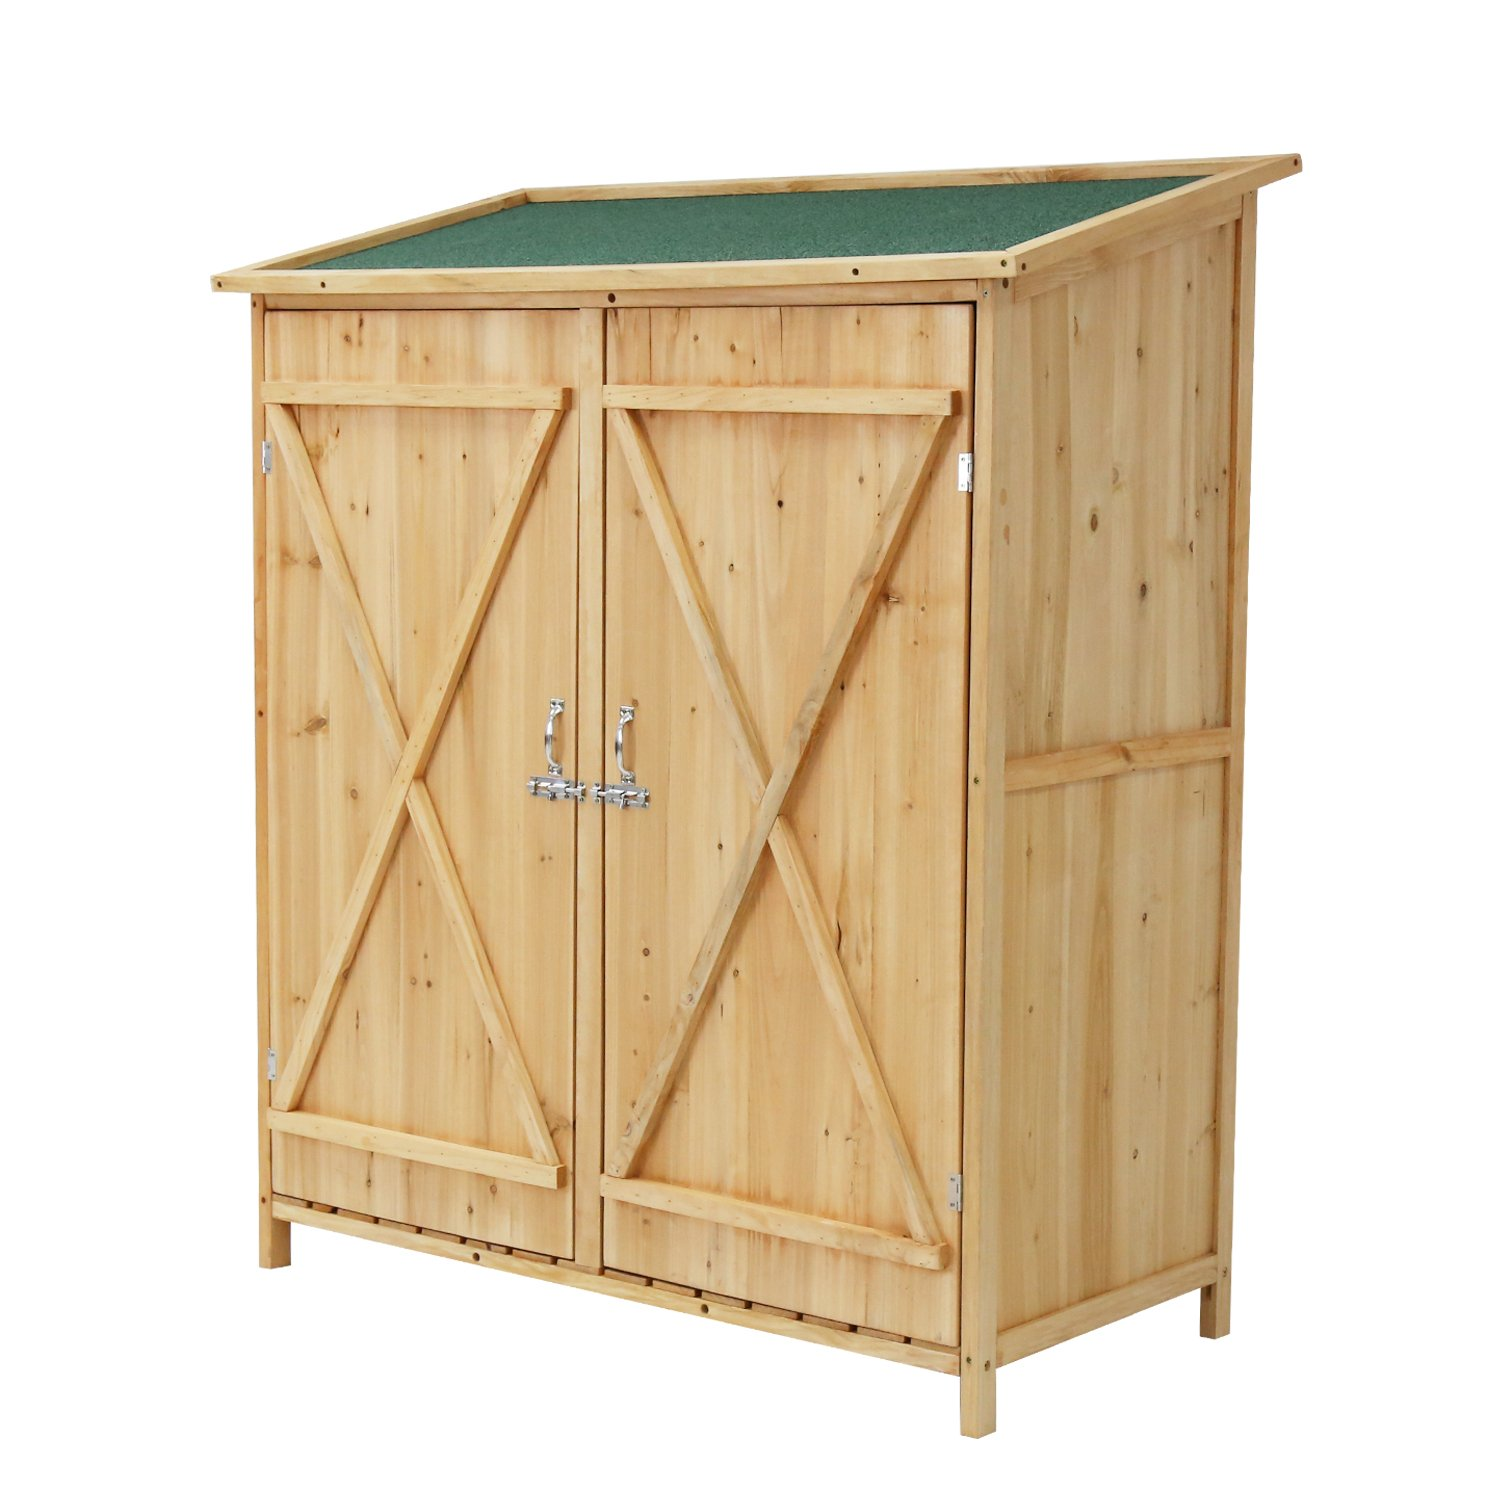 Peach Tree Wooden Outdoor Garden Shed Lockable Storage Unit With Double Doors&Chair